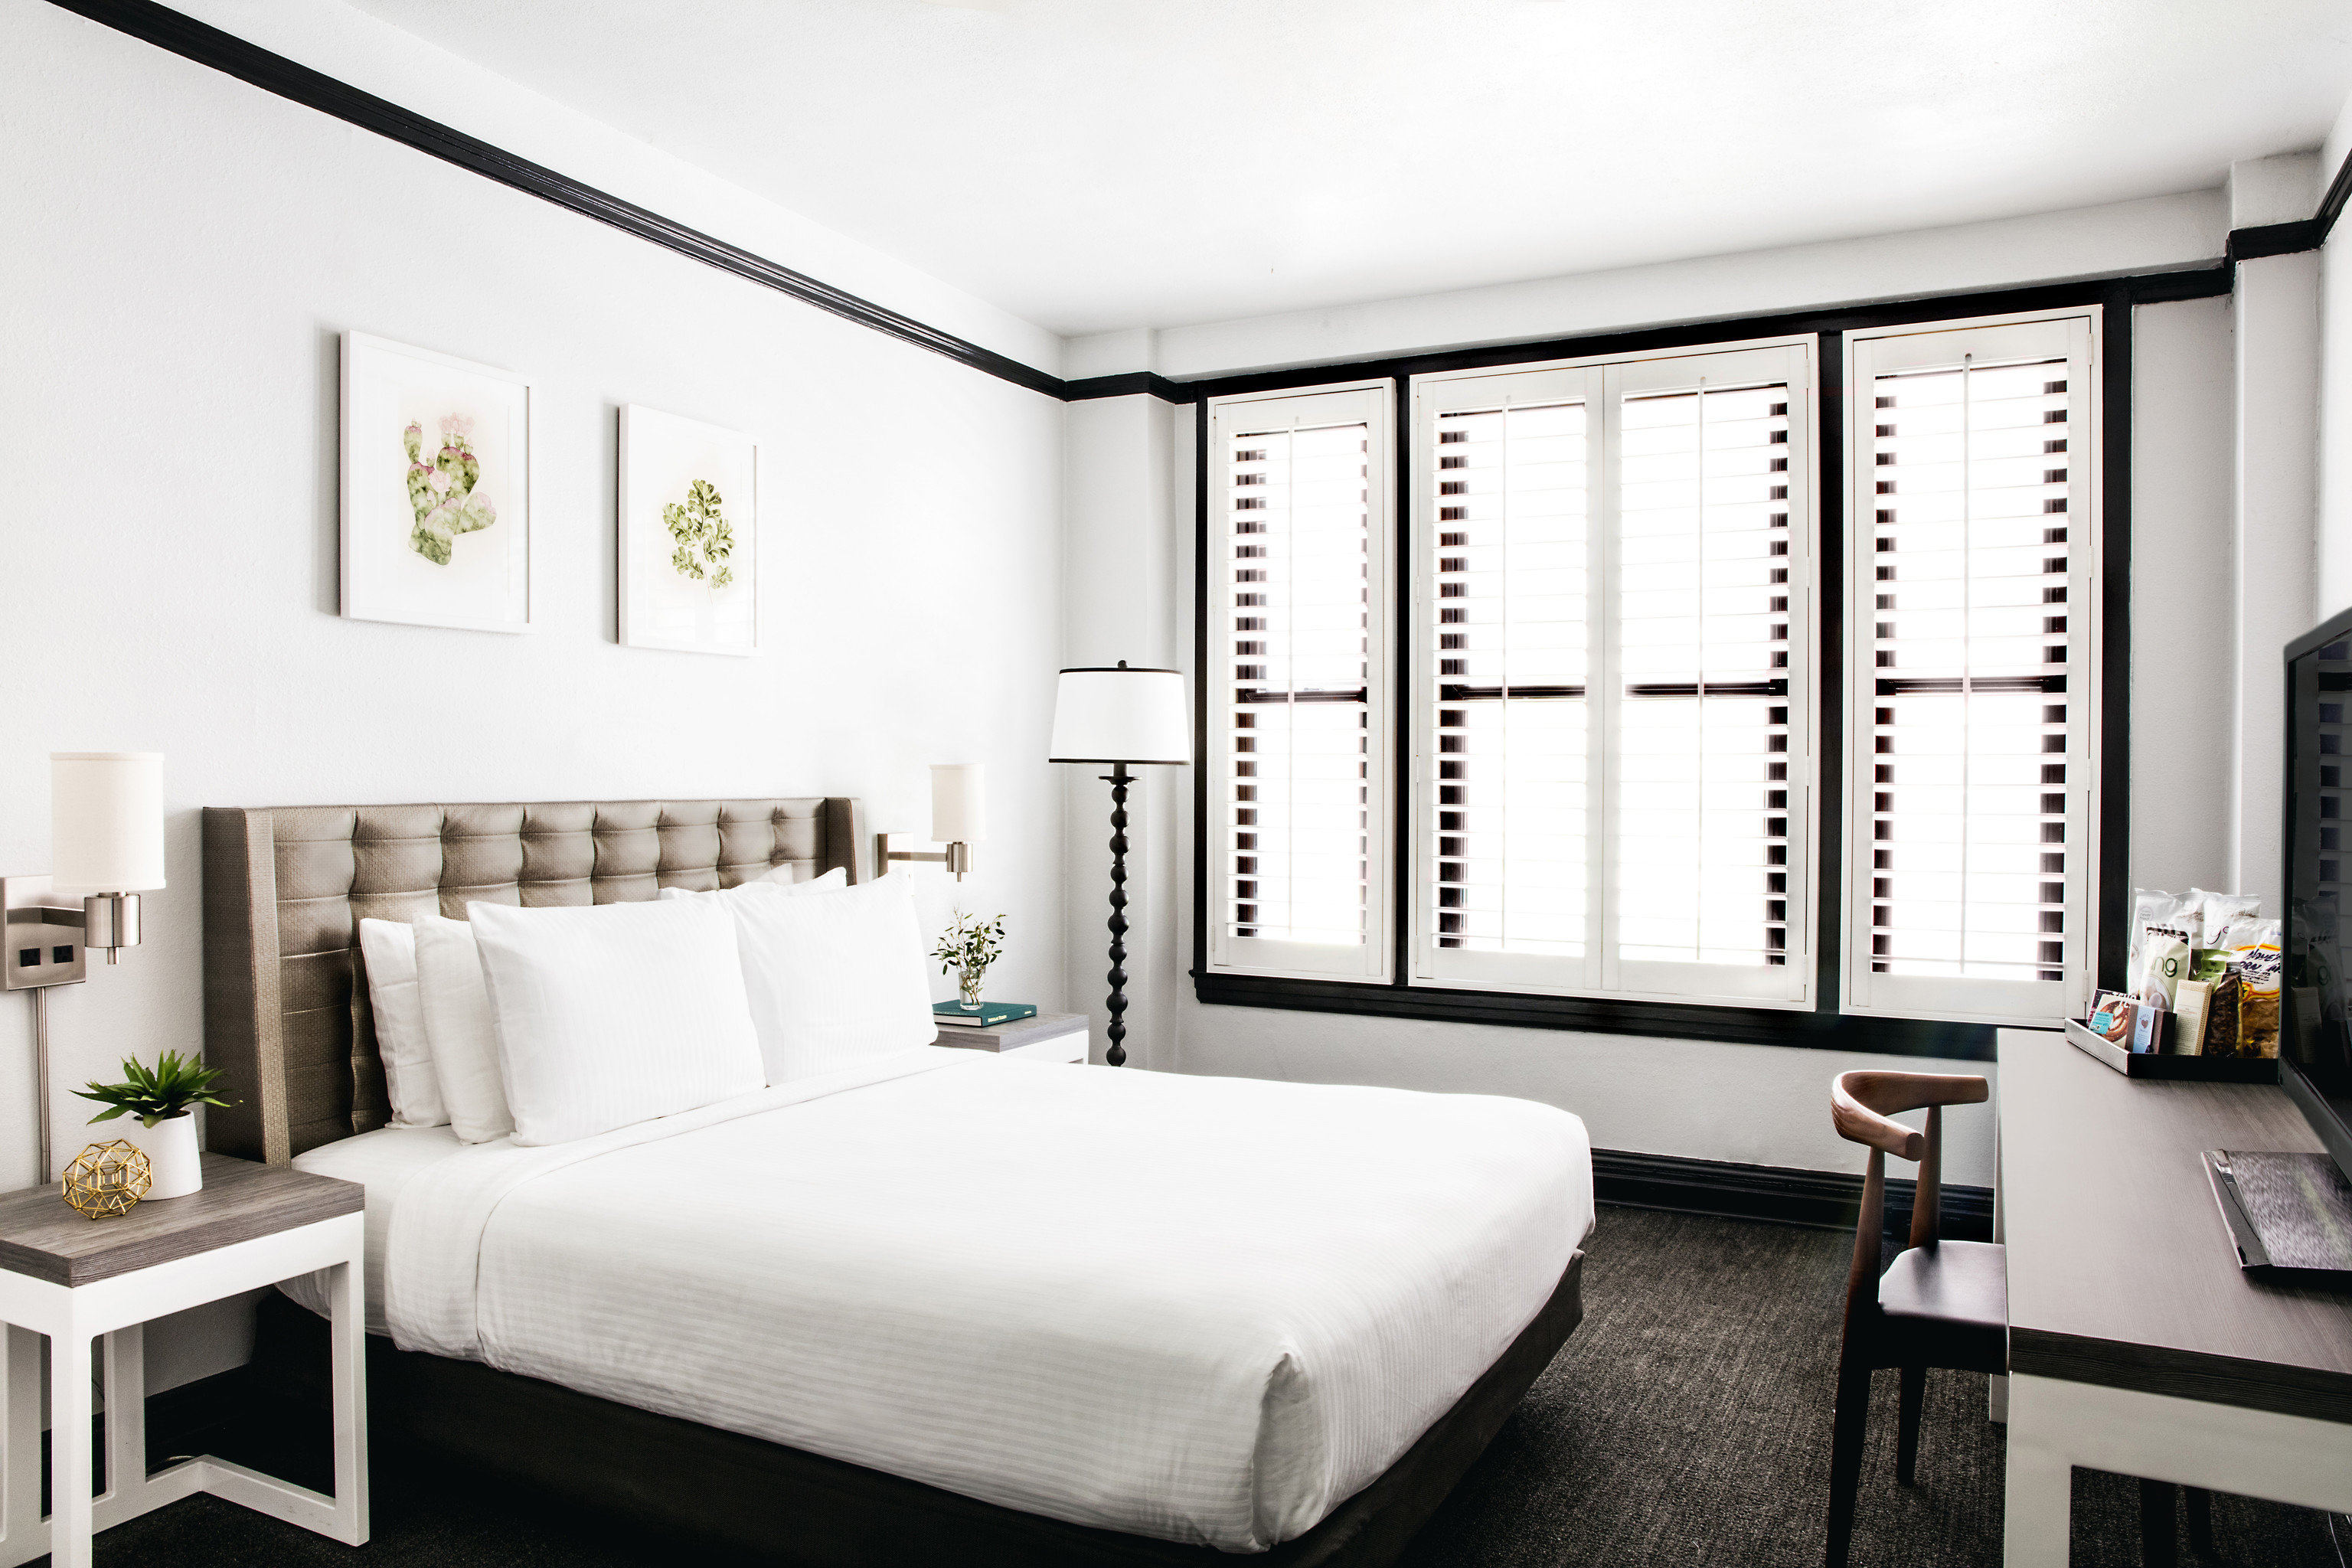 Hotels Travel Tips indoor wall floor room bed property hotel Bedroom living room interior design white home real estate furniture Design estate condominium Suite window covering ceiling apartment decorated